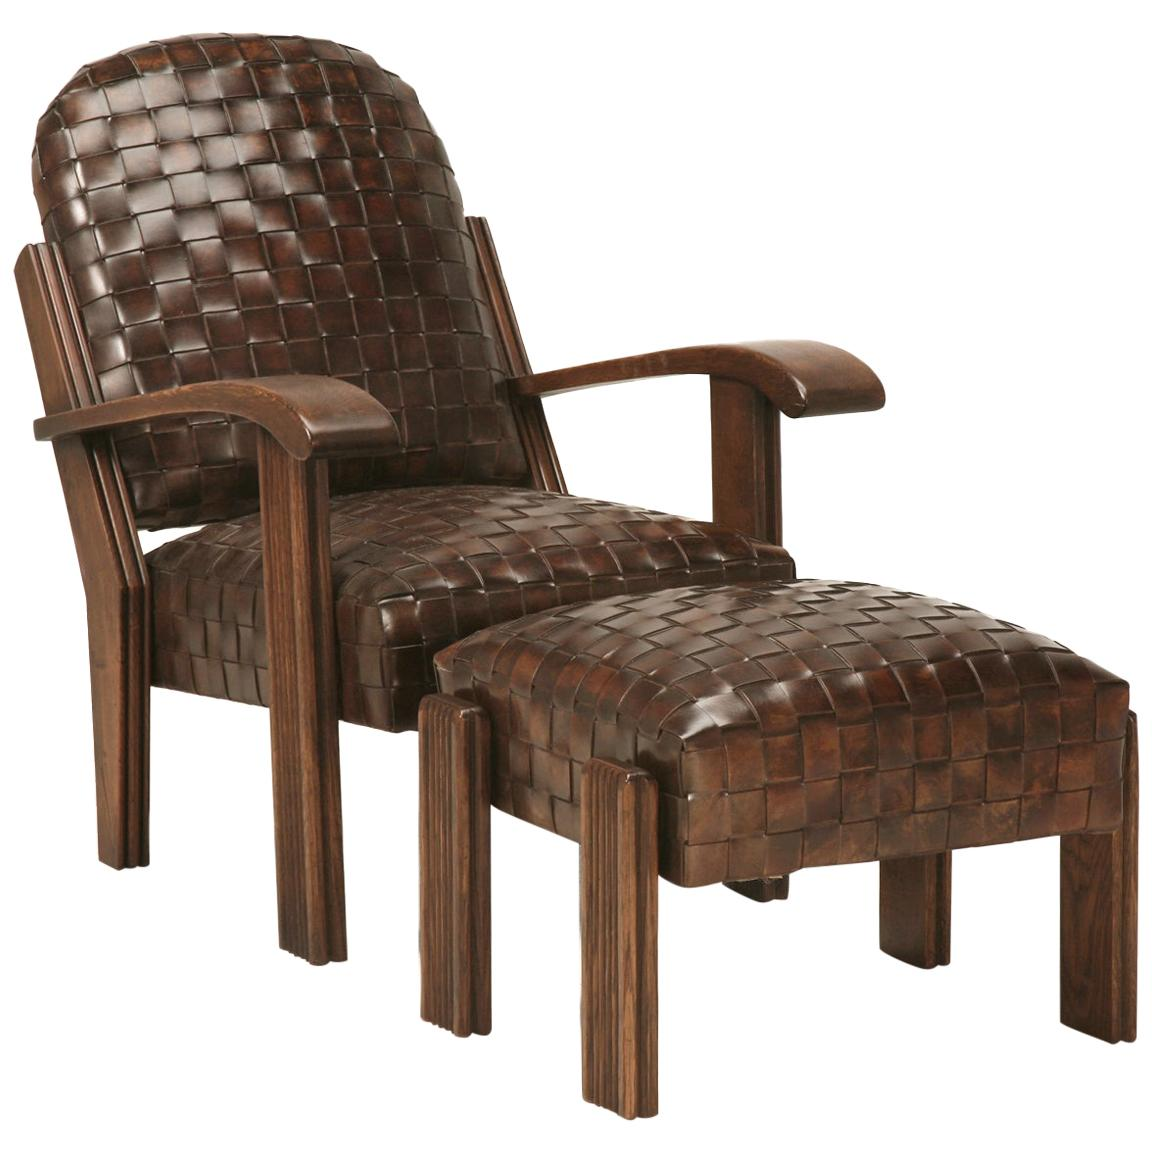 Handwoven French Inspired Leather Club Chair with Matching Ottoman